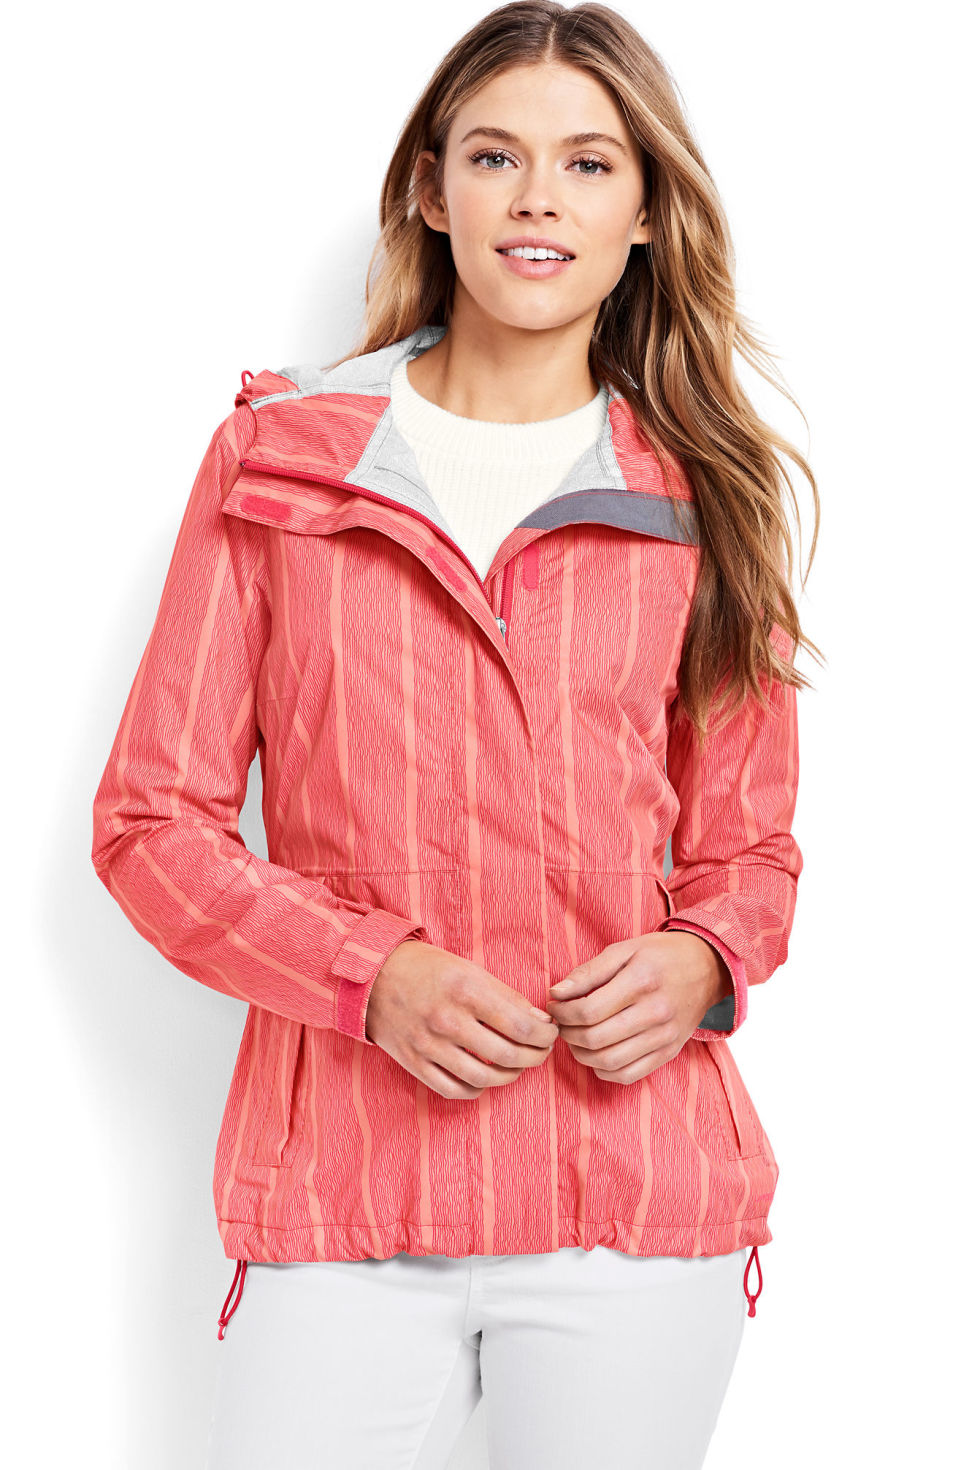 Online shopping for popular & hot Cute Womens Raincoats from Home & Garden, Raincoats, Umbrellas, Women's Clothing & Accessories and more related Cute Womens Raincoats like cute womens thermals, soft women clothing, soft clothing women, women cute windbreakers. Discover over of the best Selection Cute Womens Raincoats on loadingtag.ga